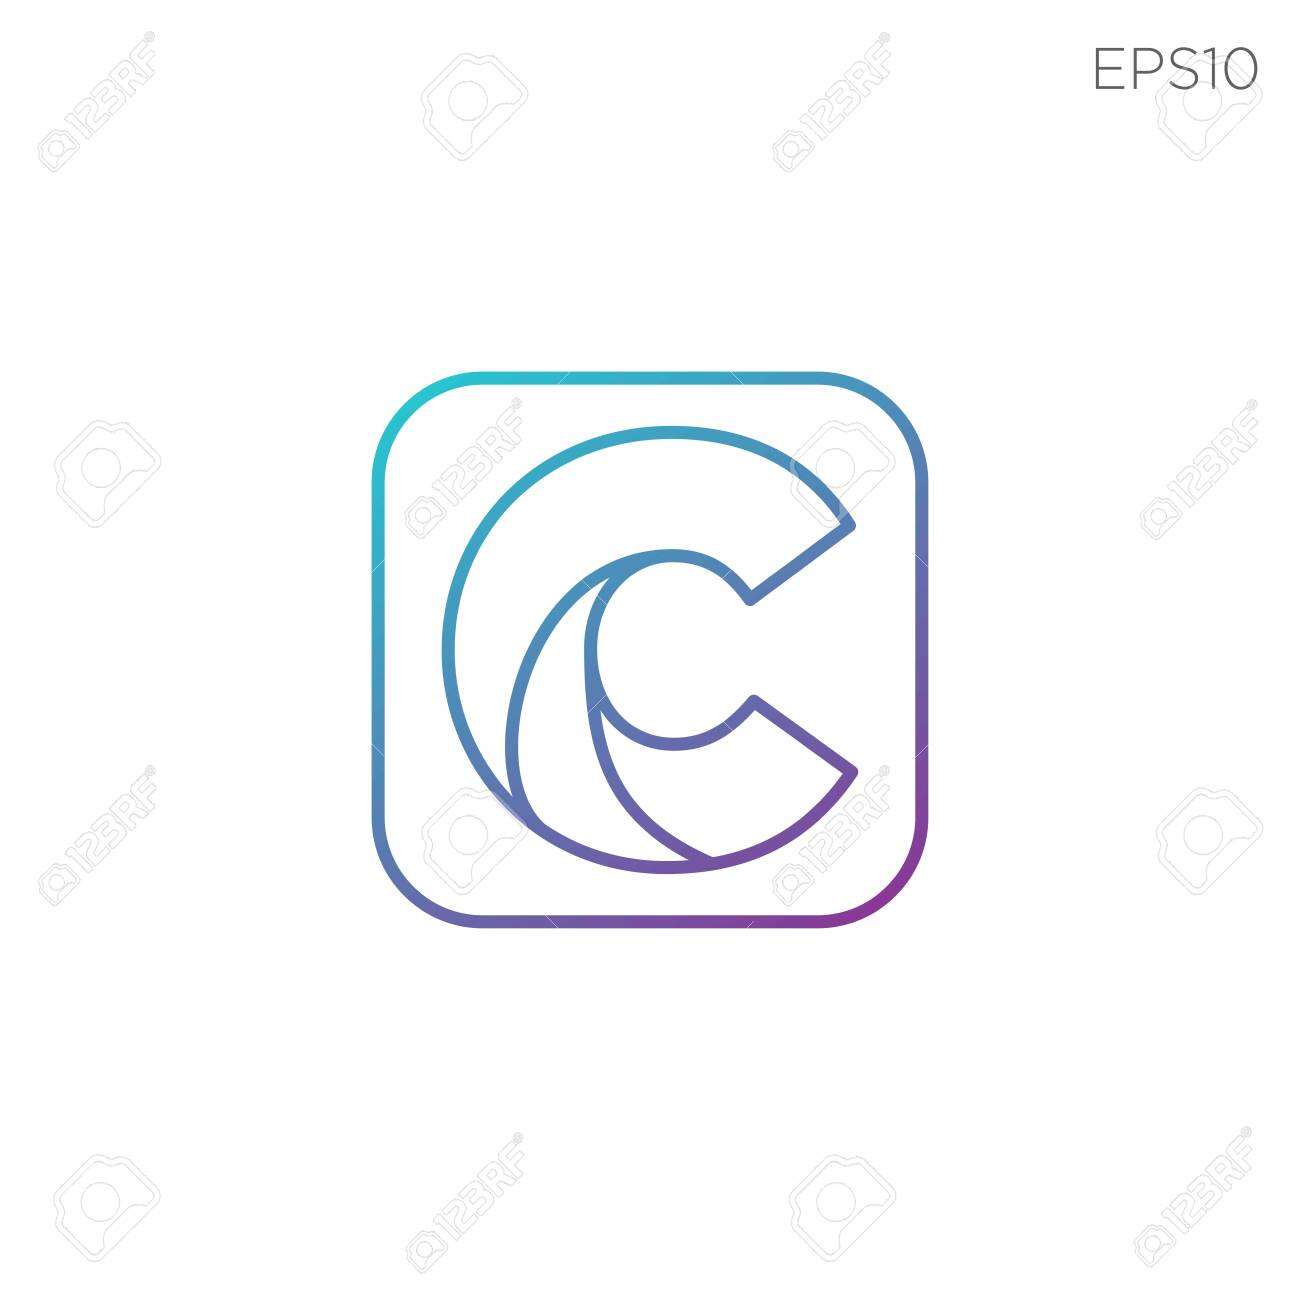 Monogram Initial C C Logo Template Black Color Vector Illustration Royalty Free Cliparts Vectors And Stock Illustration Image 123197944